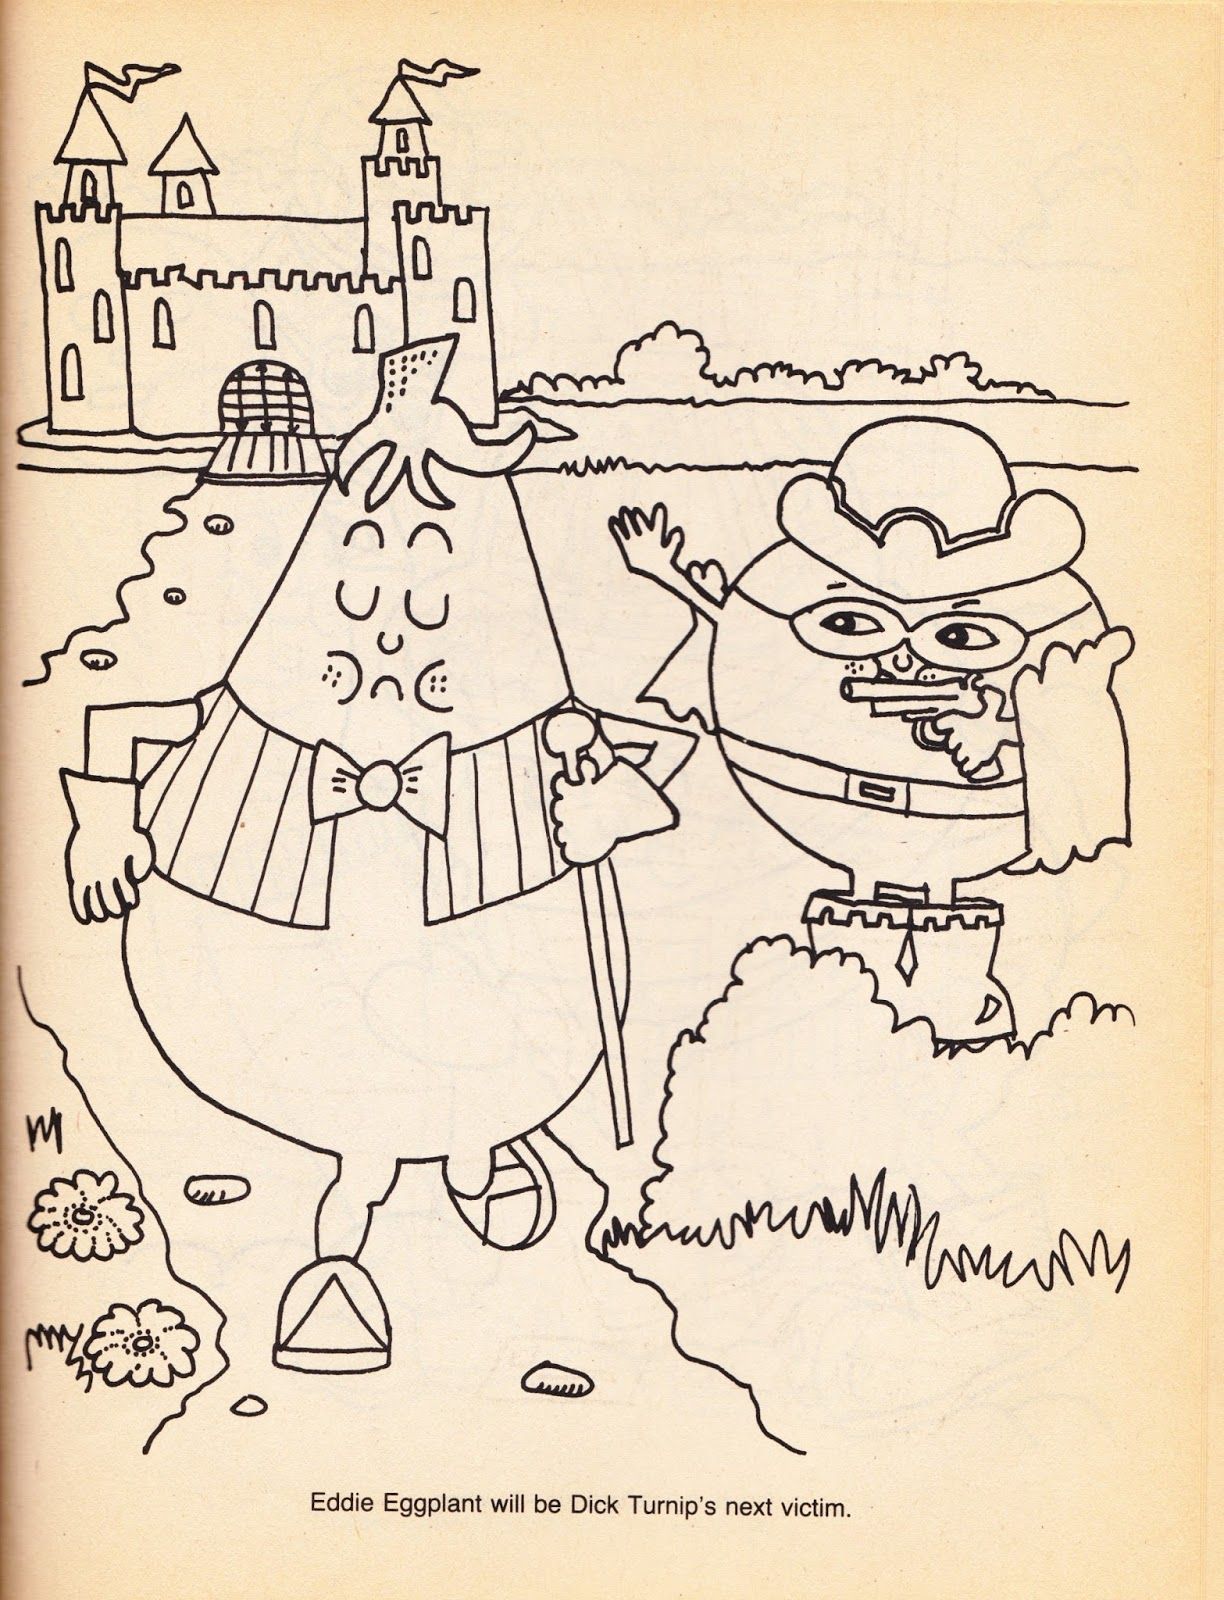 The coloring book of physics - Dick Turnip Is Going To Straight Up Murder Eddie Eggplant Wow Just Wow Thanks Munch Bunch For Reviving My Childhood Fear Of Turnips